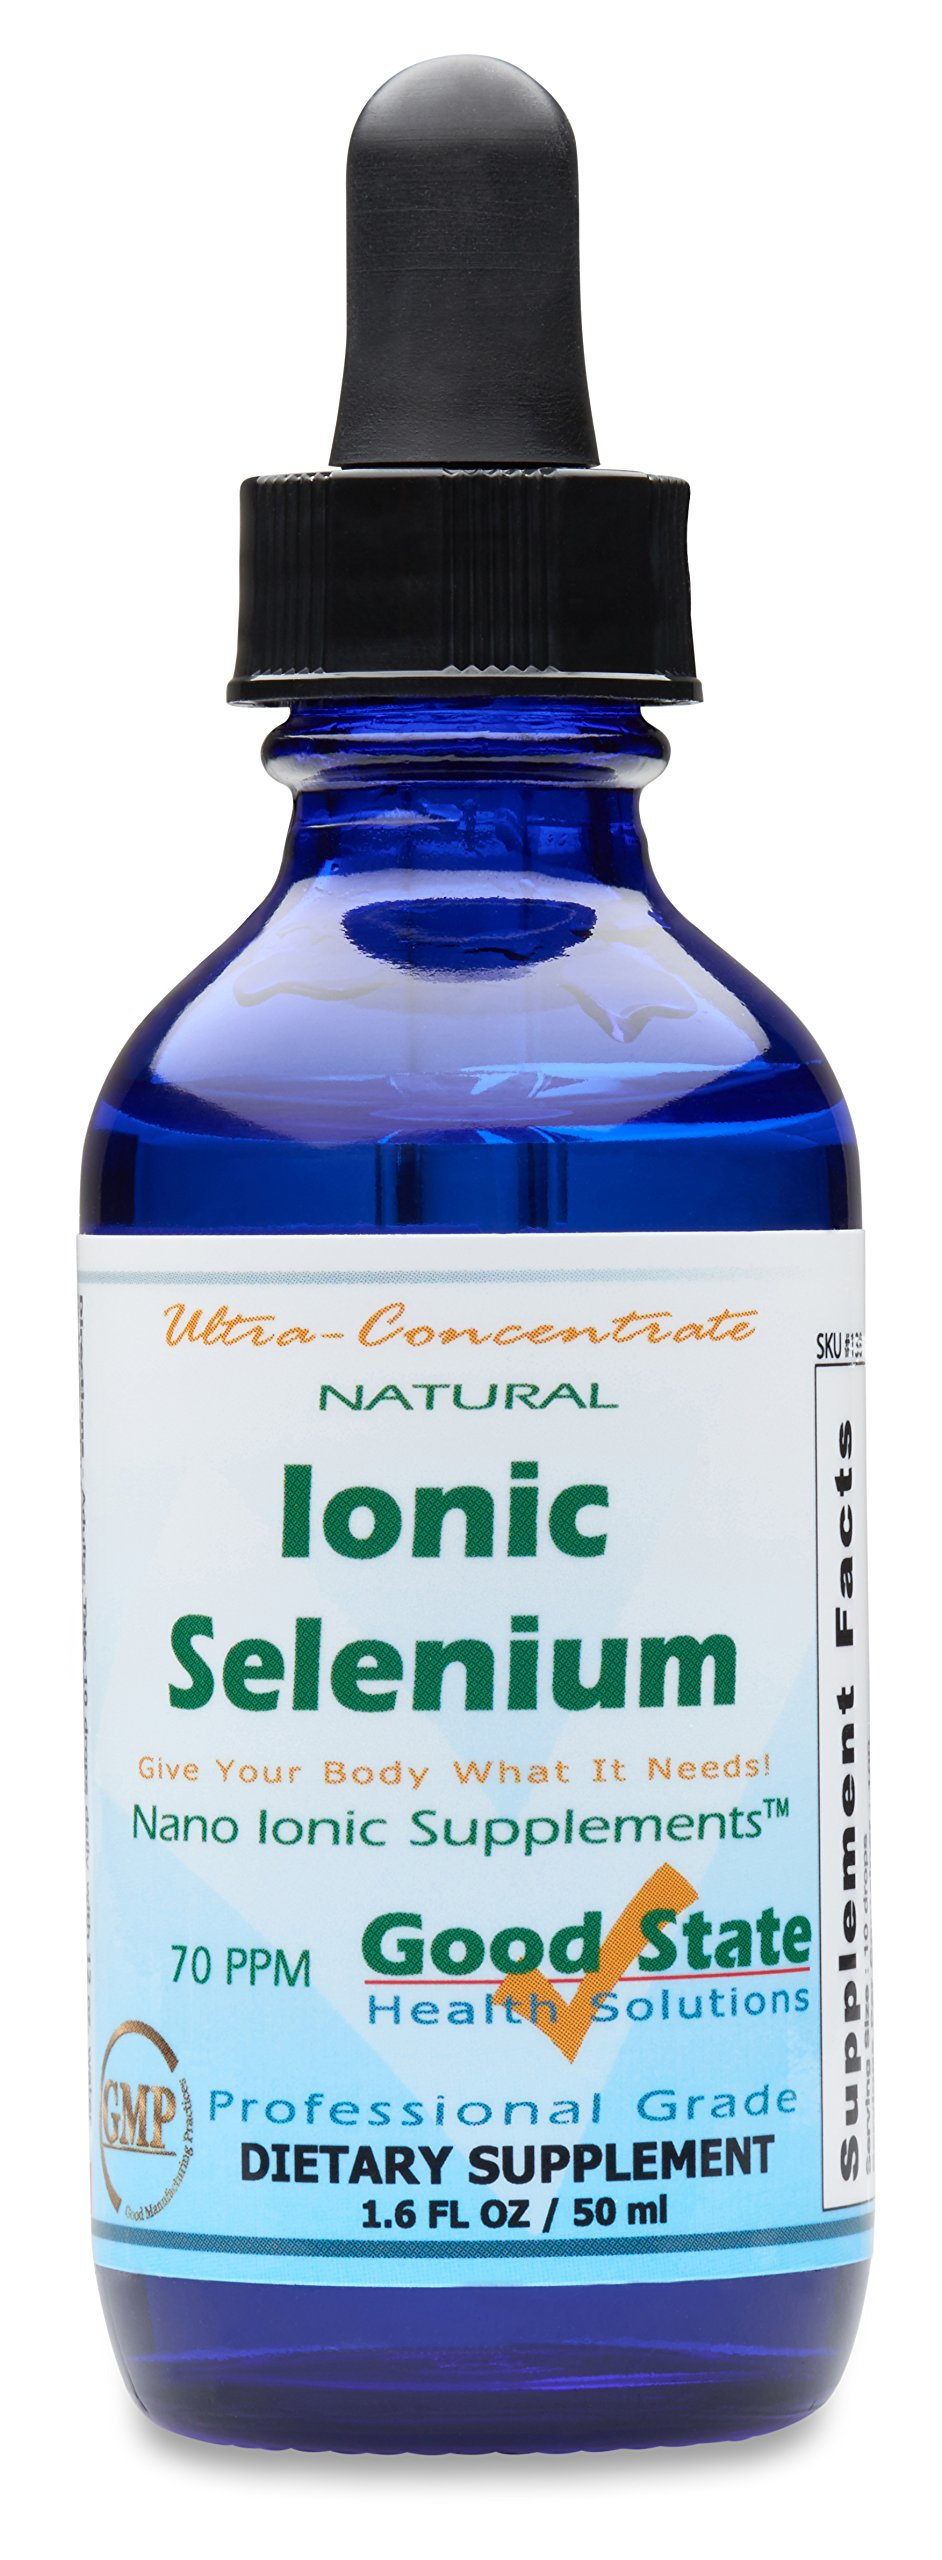 (Glass Bottle) Good State Liquid Ionic Selenium Ultra Concentrate (10 drops equals 70 mcg - 100 servings per bottle)